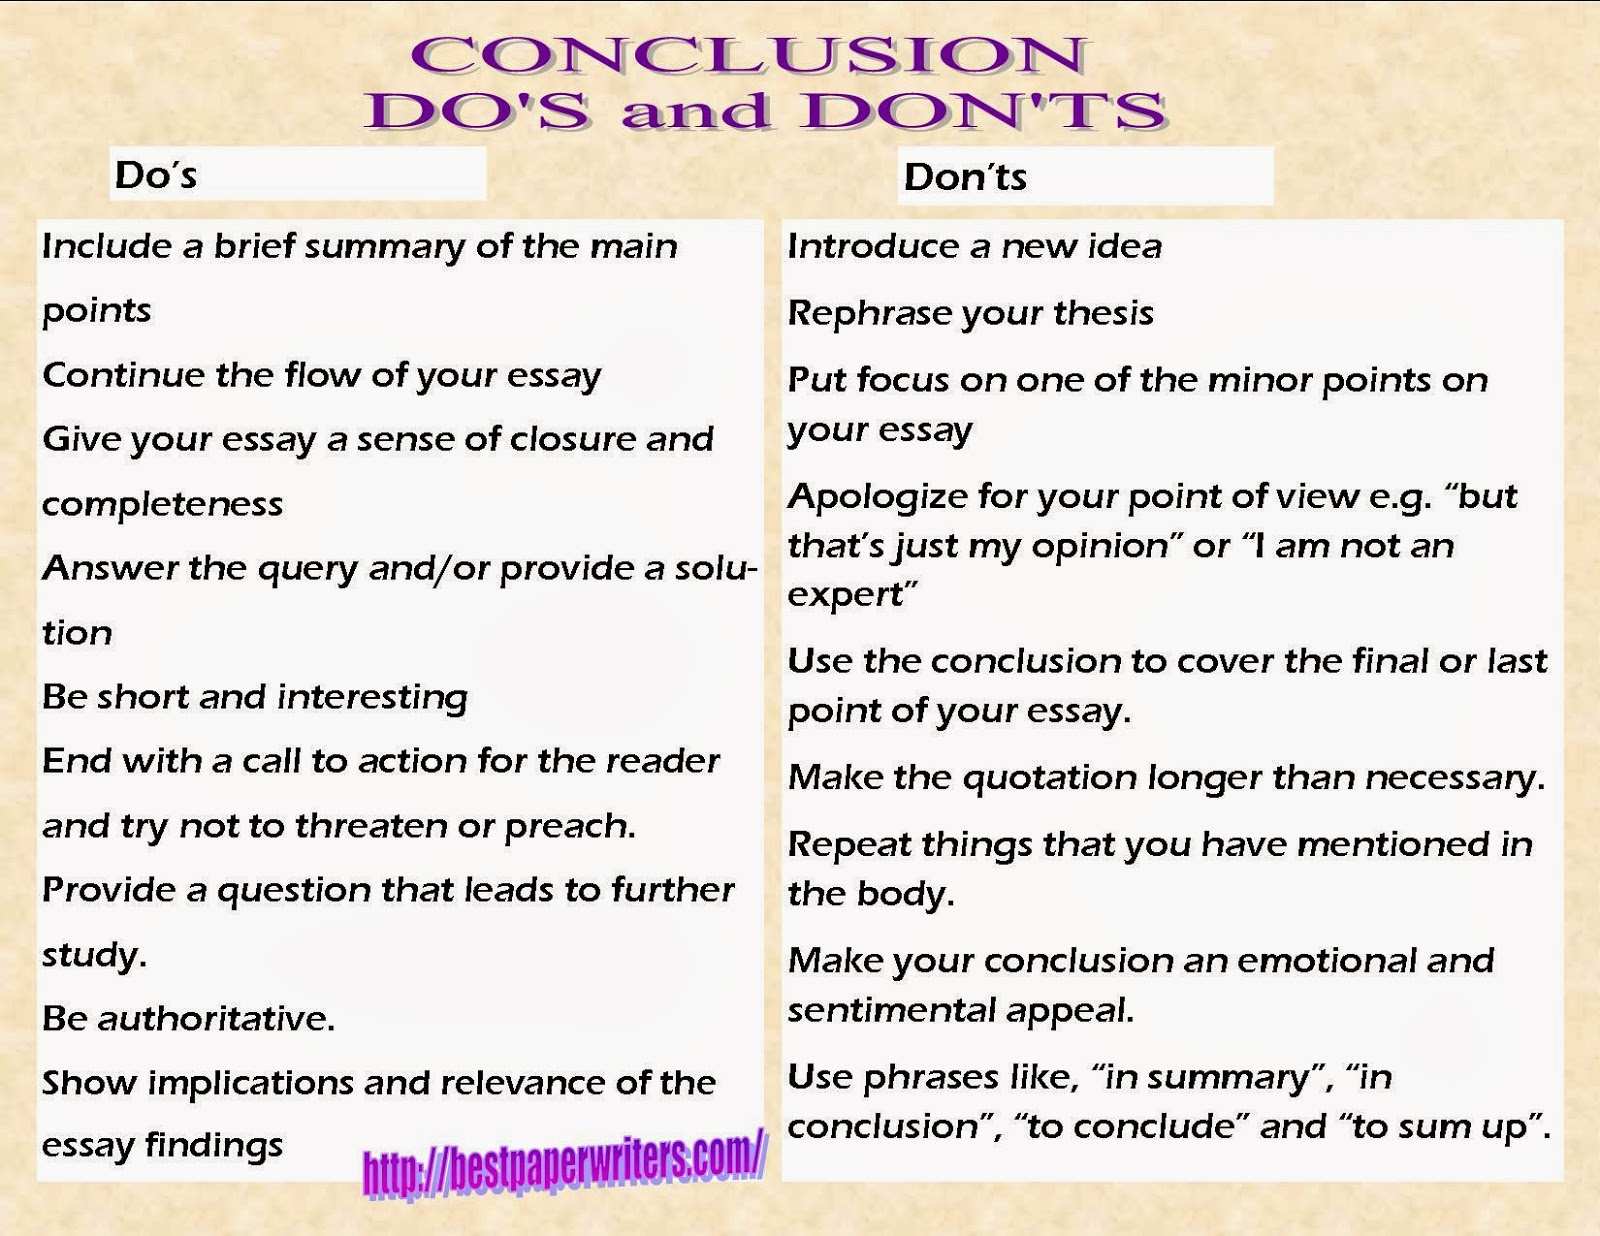 How do i write a conclusion for an essay?